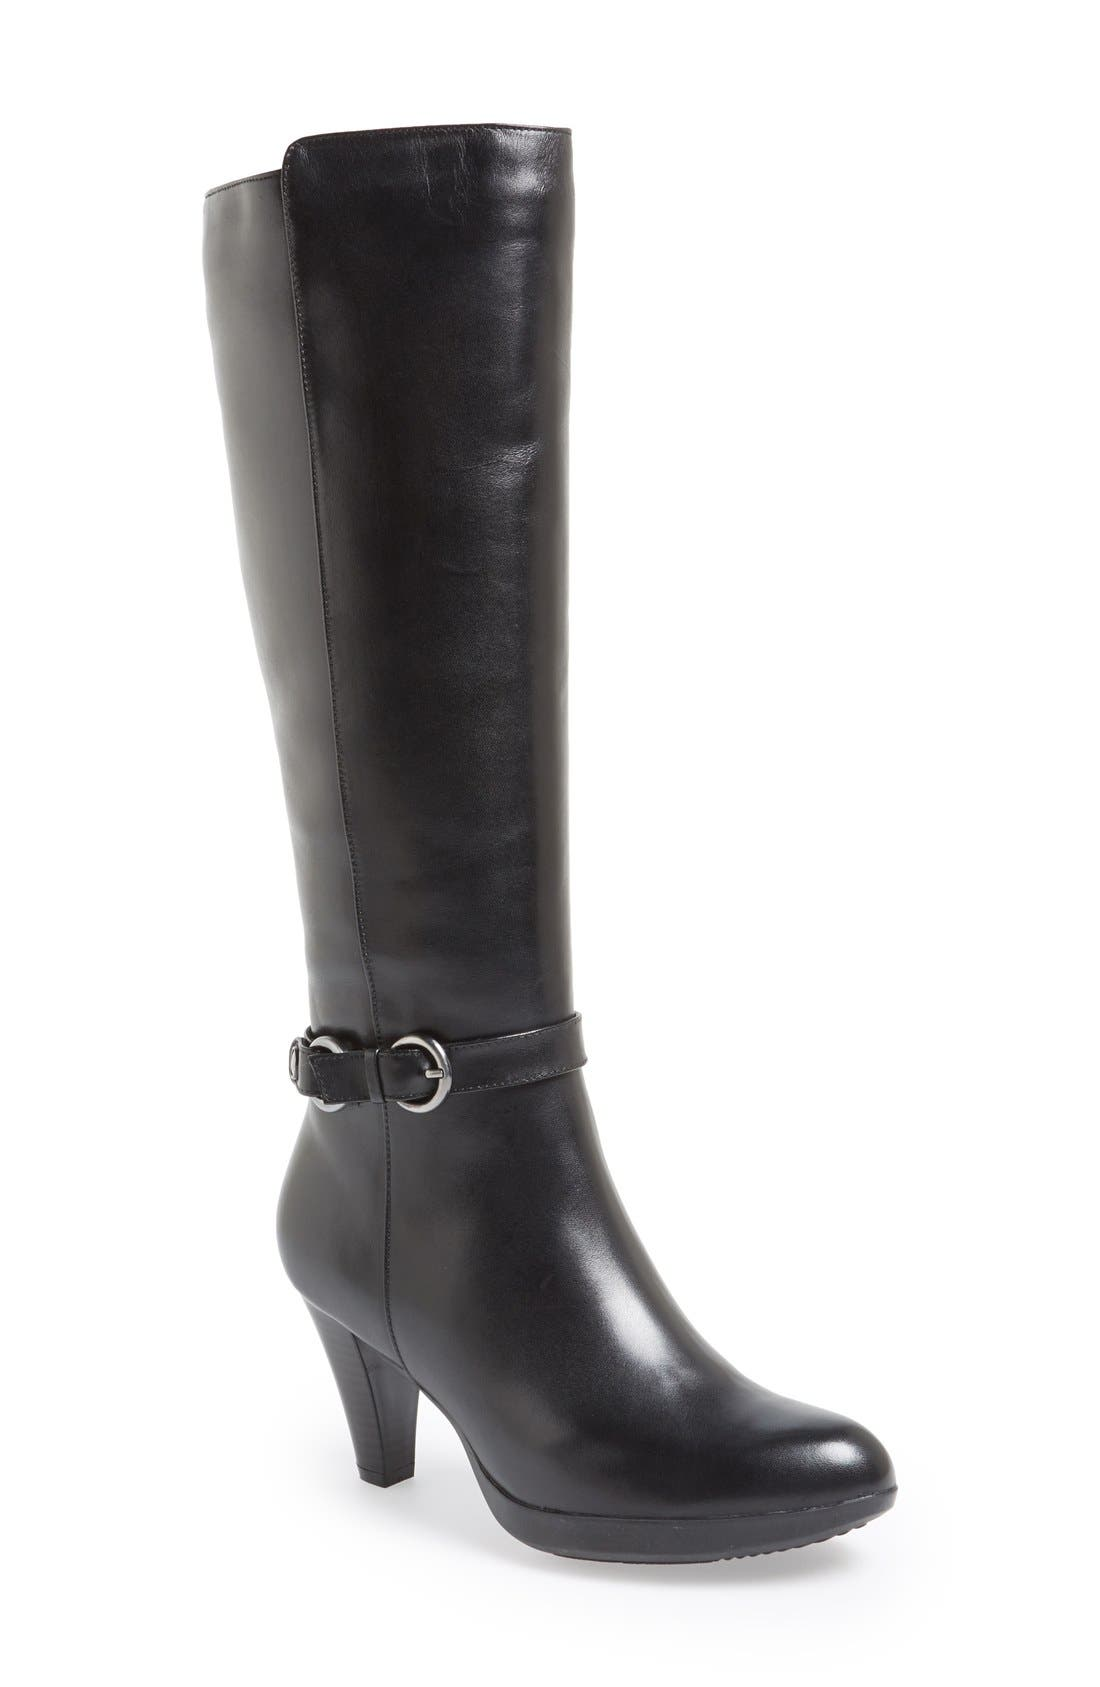 Alternate Image 1 Selected - Blondo 'Ilanna' Knee High Leather Boot (Women)